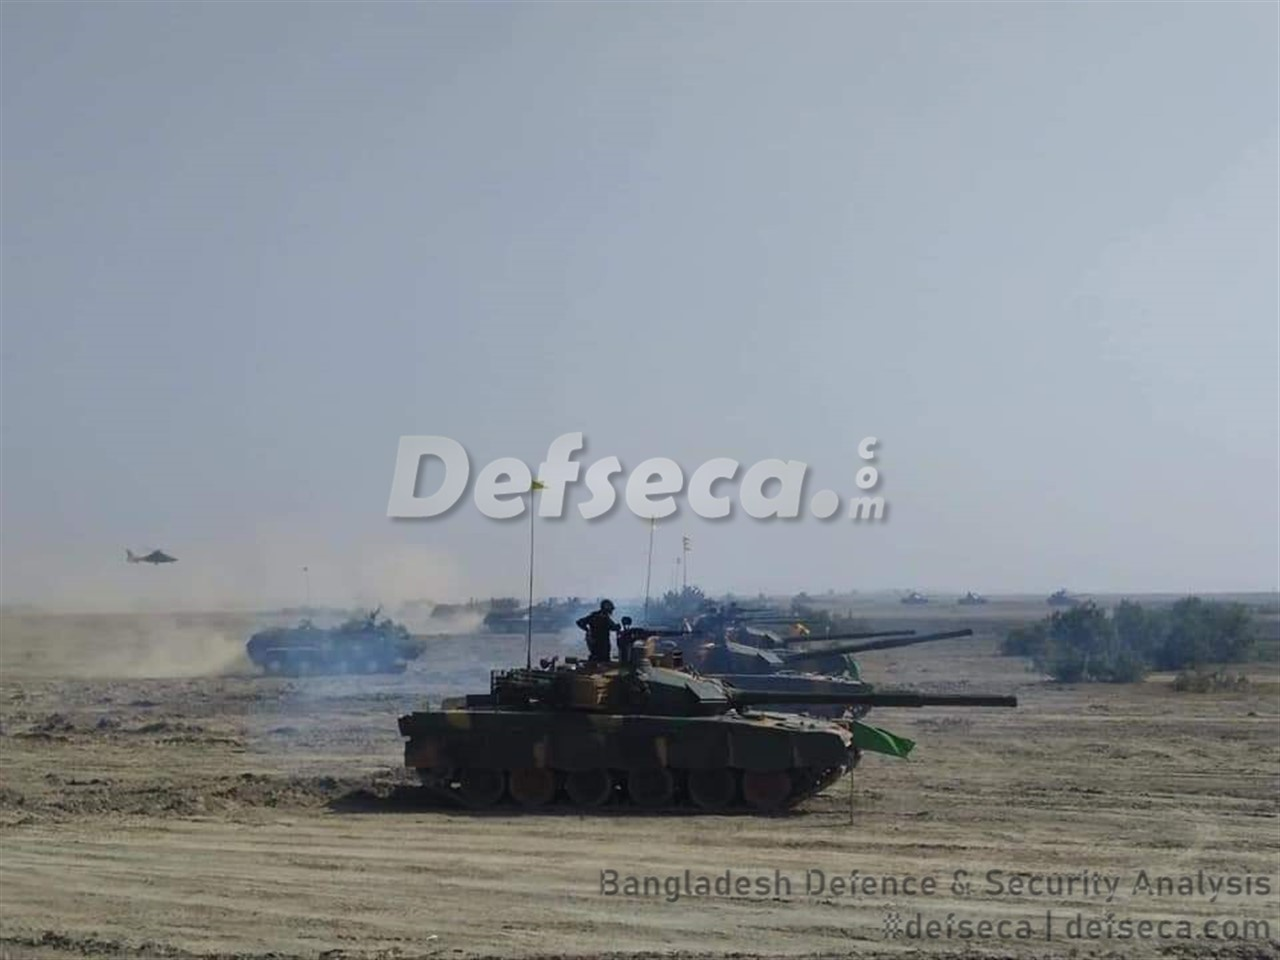 Bangladesh Army holds large scale mock war drills on island